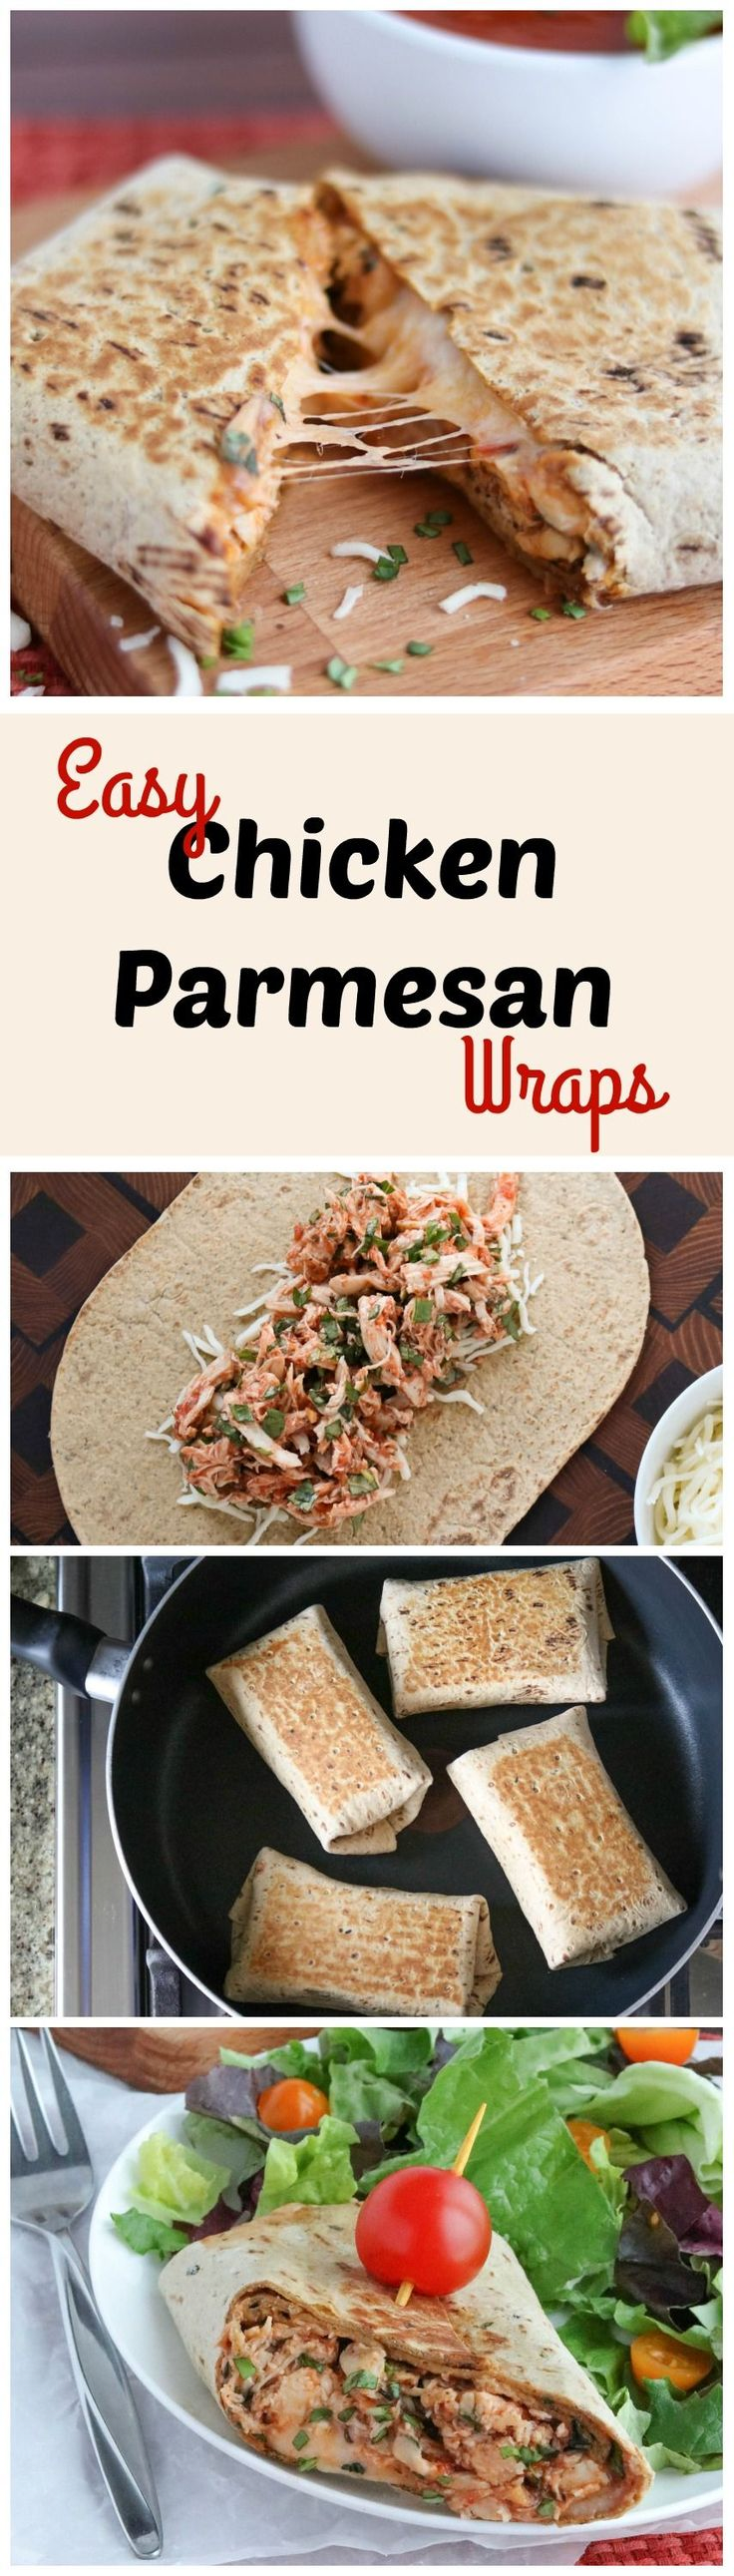 These Easy Chicken Parmesan Wraps are a fast 15-minute meal! You can even make them ahead – they're freezable, too! Cheesy, saucy and so delicious! AD | www.TwoHealthyKitchens.com